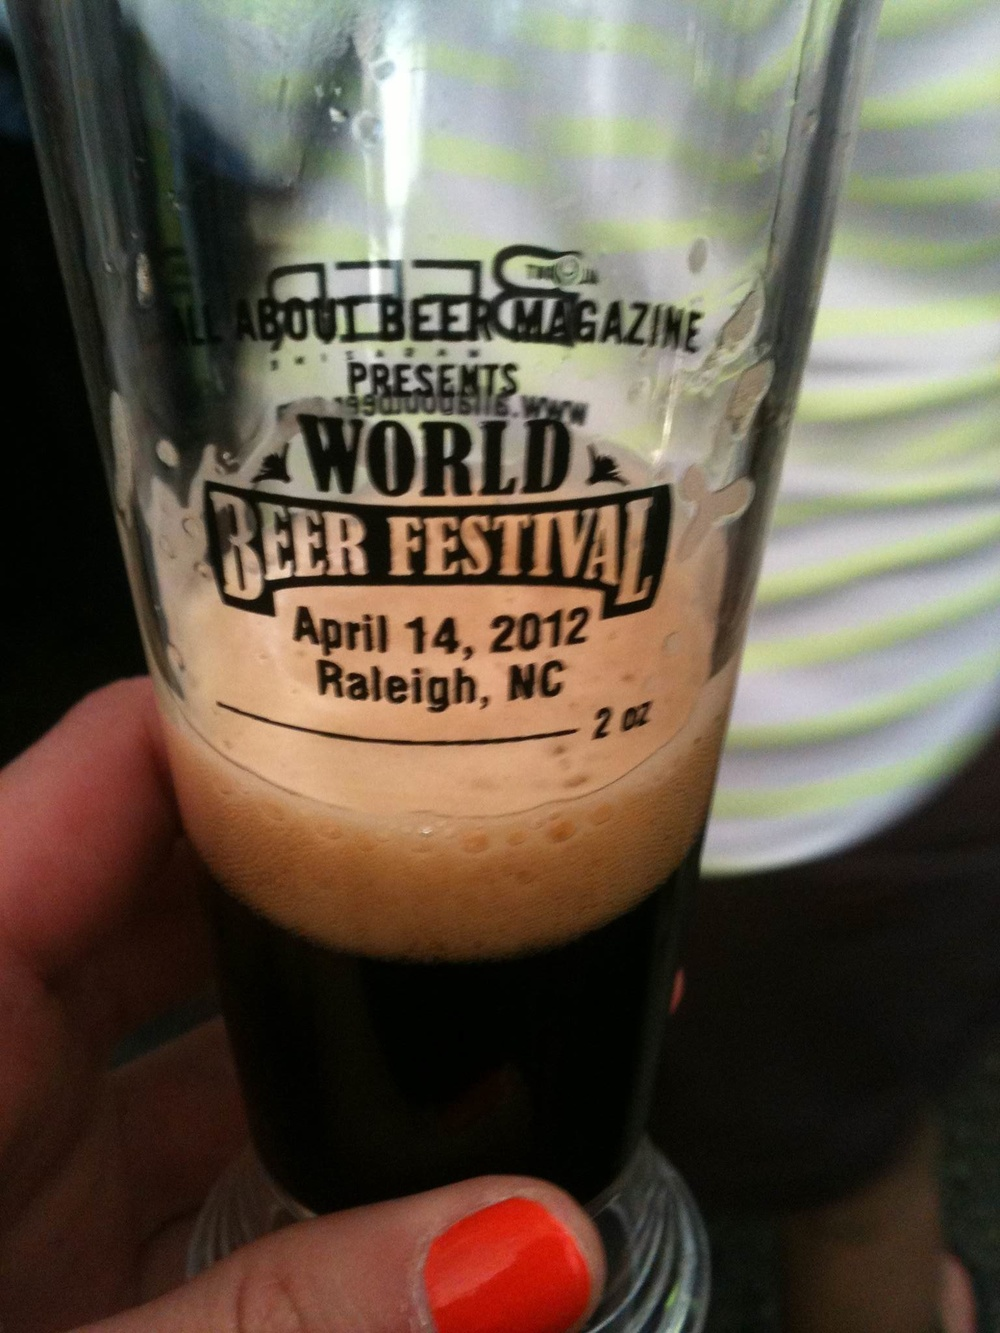 World Beer Fest